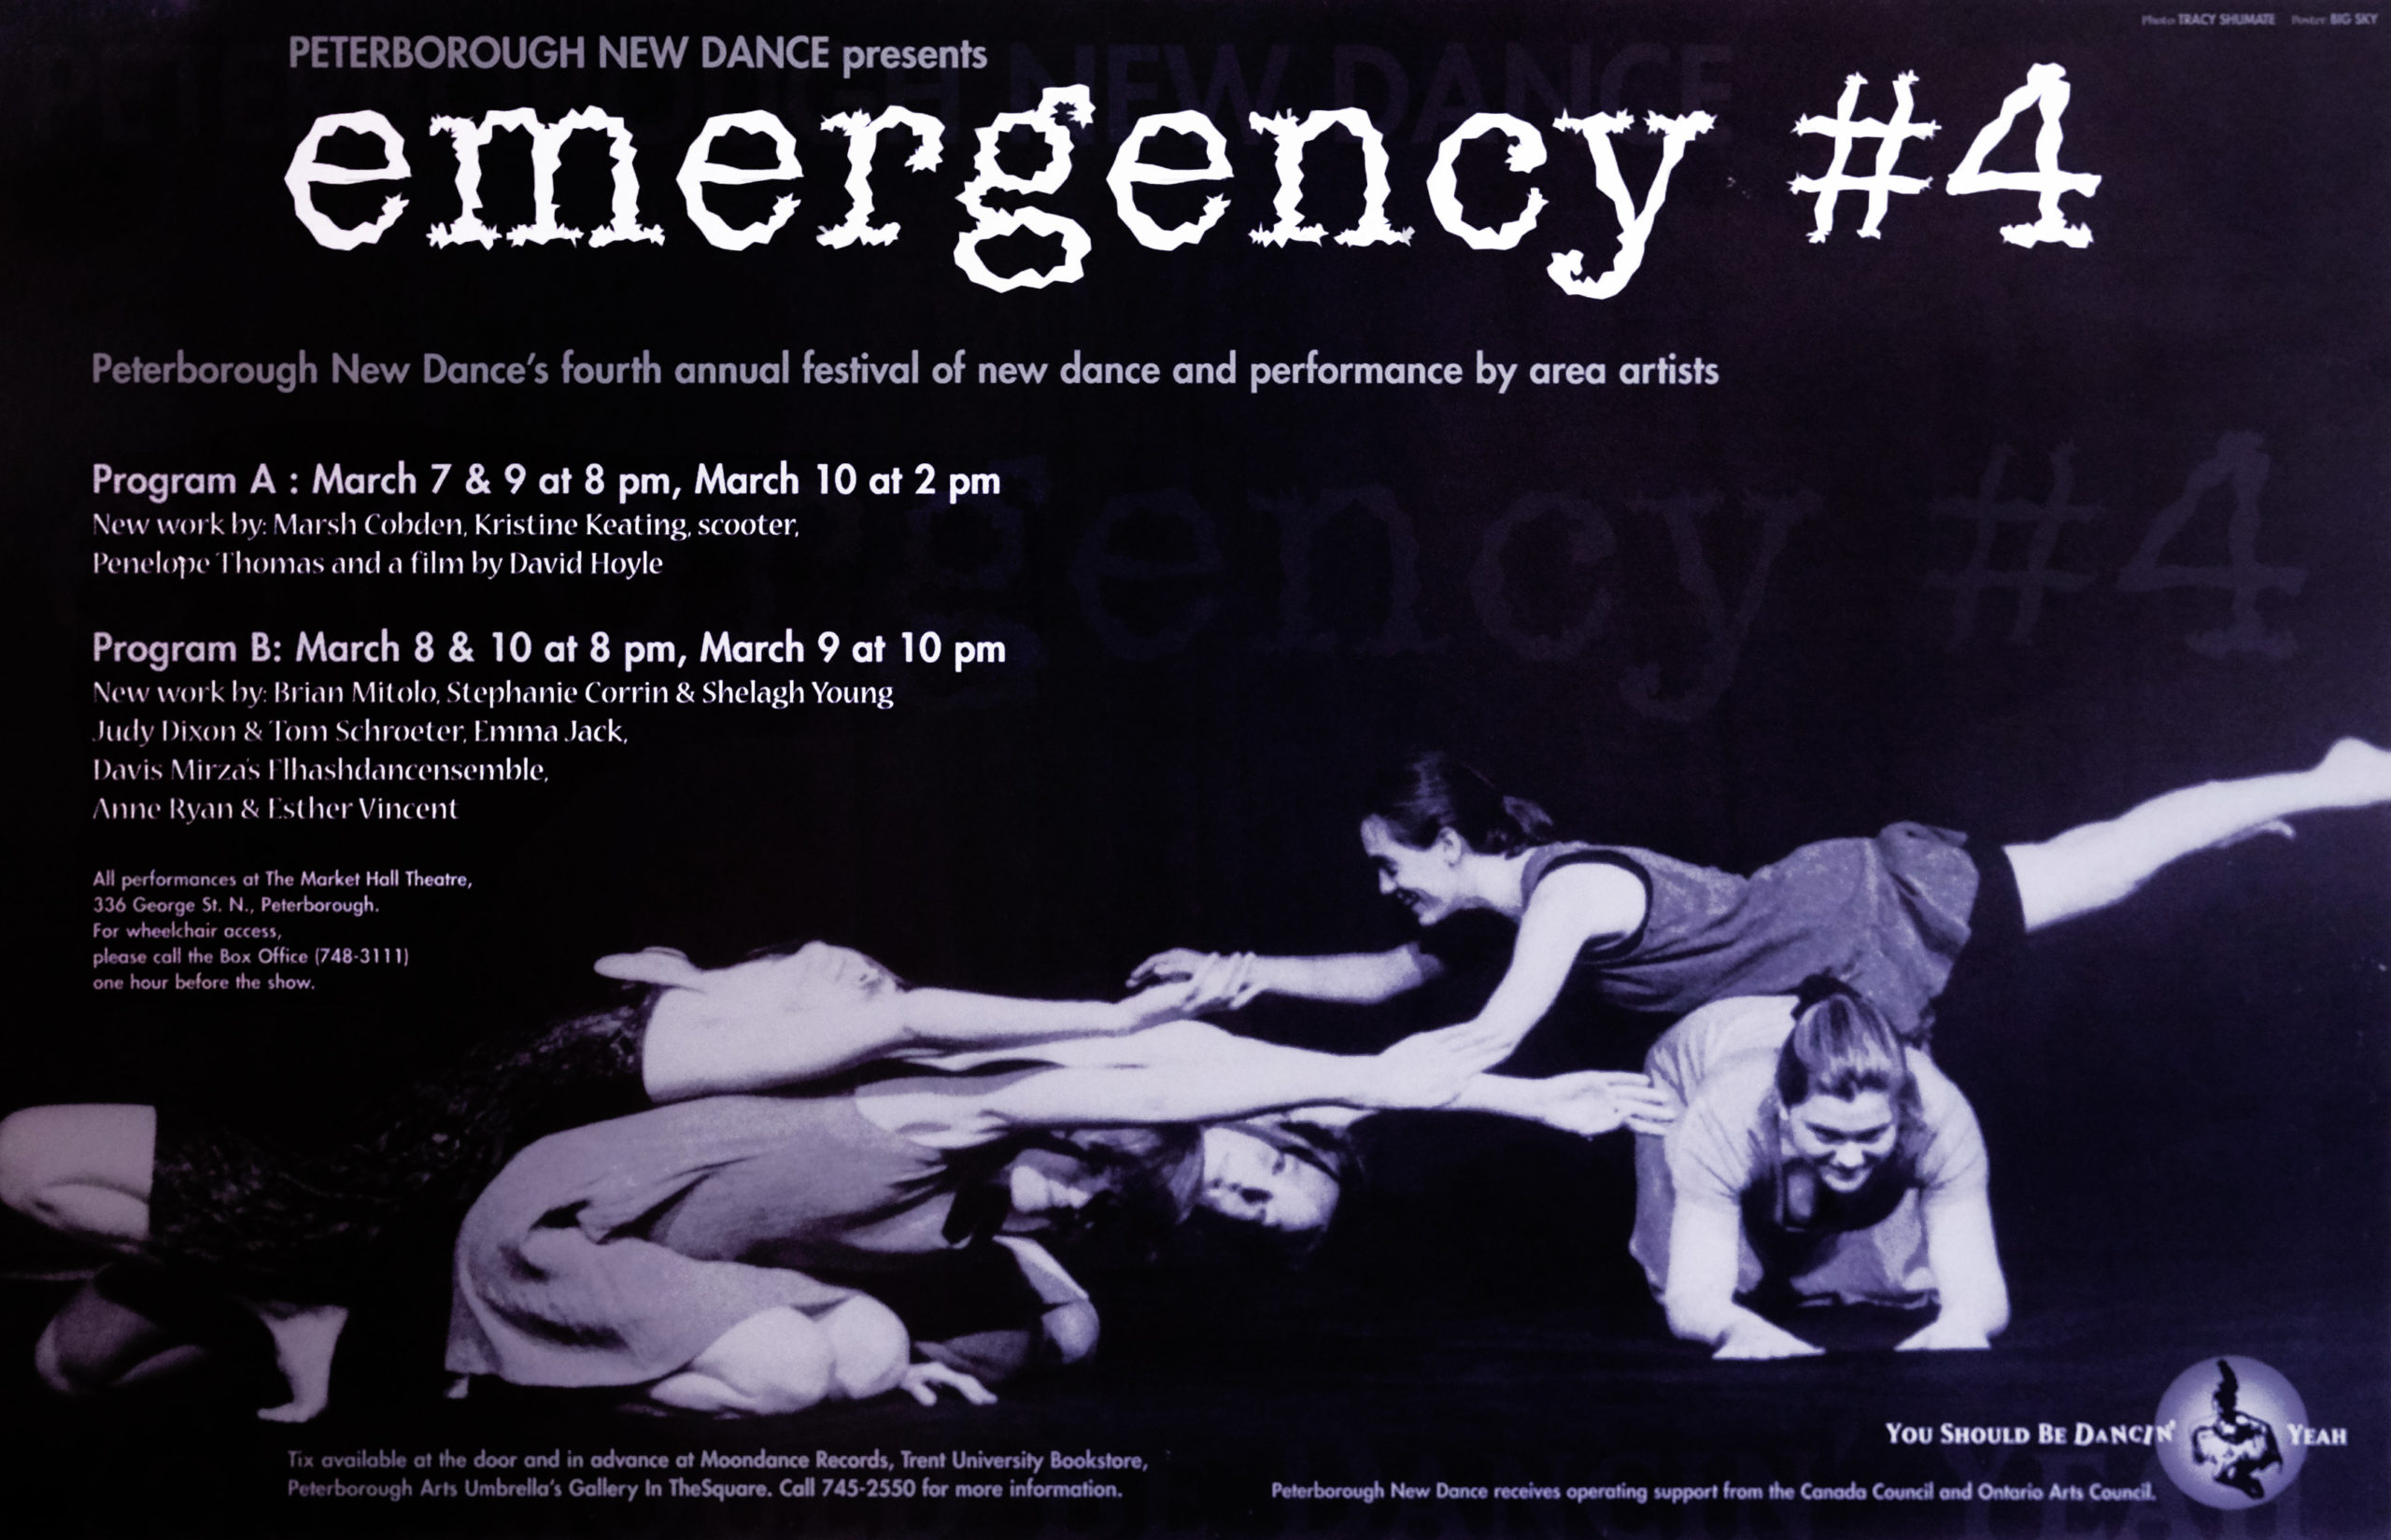 Emergency #4 – Festival of new dance and performance by Peterborough-based artists Poster for Emergency #4 in the photo.